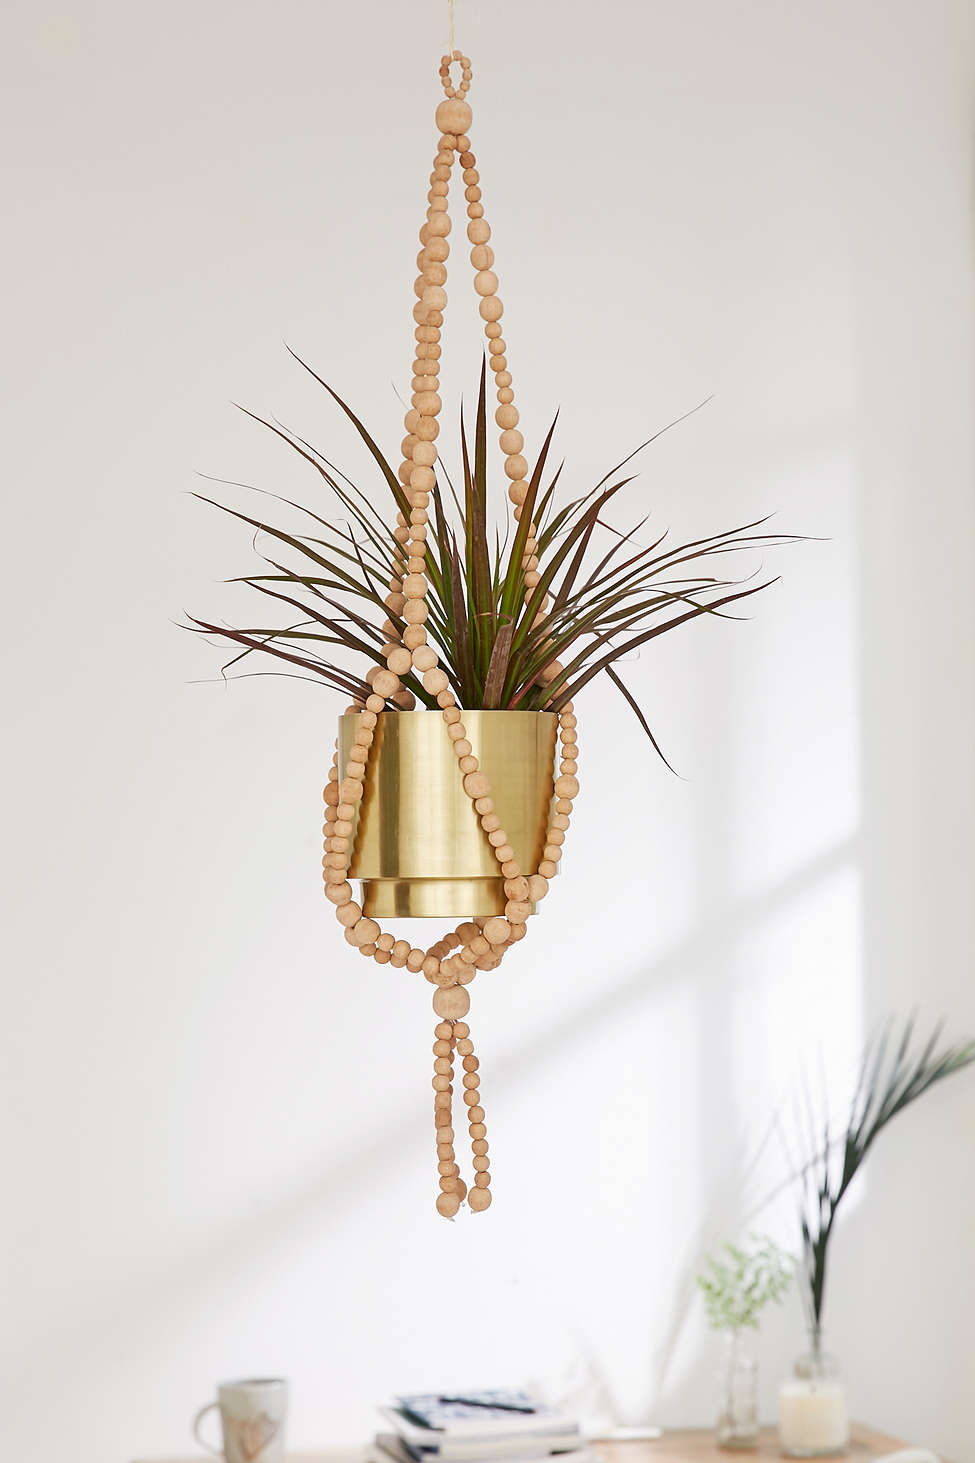 Beaded plant hanger from Urban Outfitters